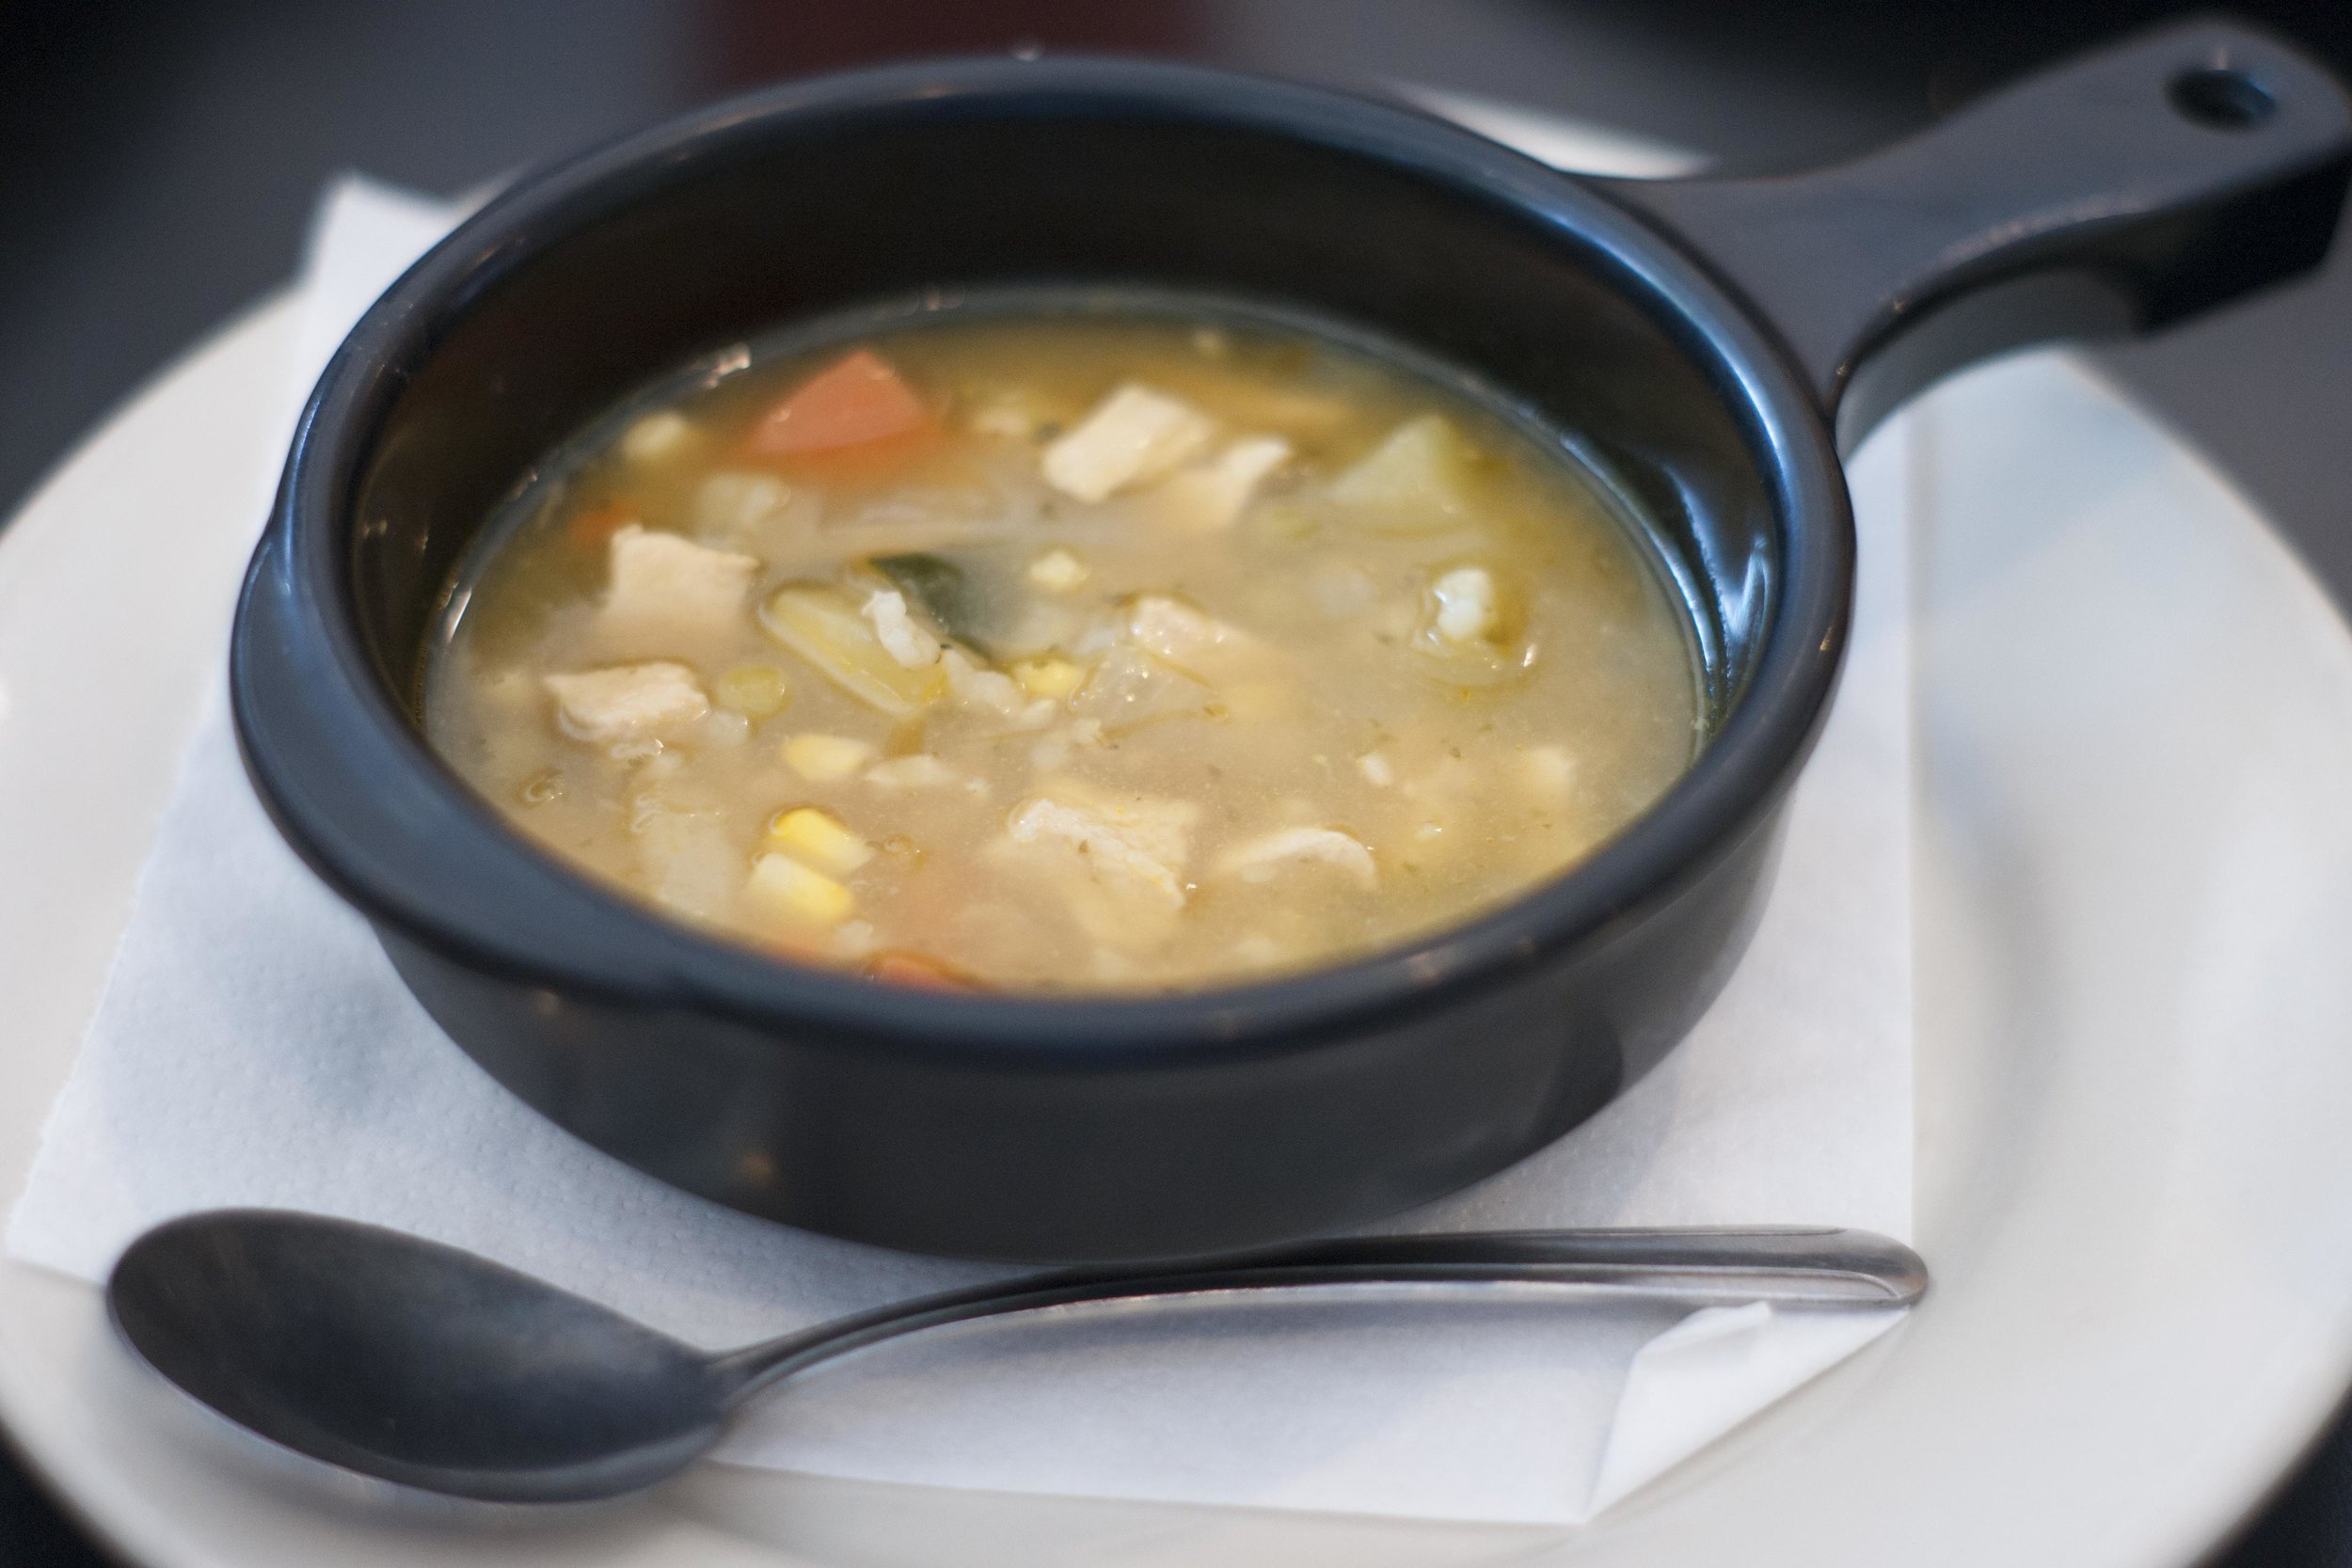 Batata's chicken vegetable with brown rice soup is $4.95 for a 12-ounce and $6.45 for a 16-ounce.